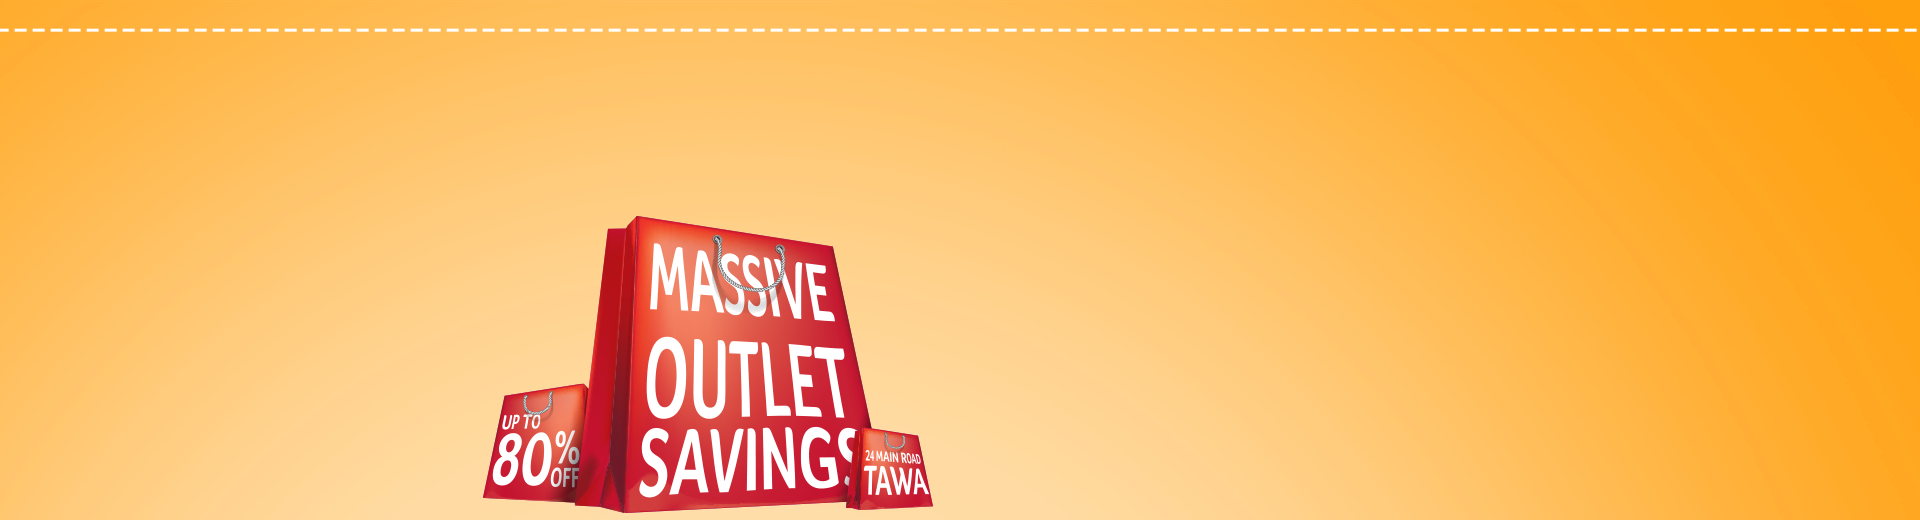 Outlet-Savings-Orange-BG